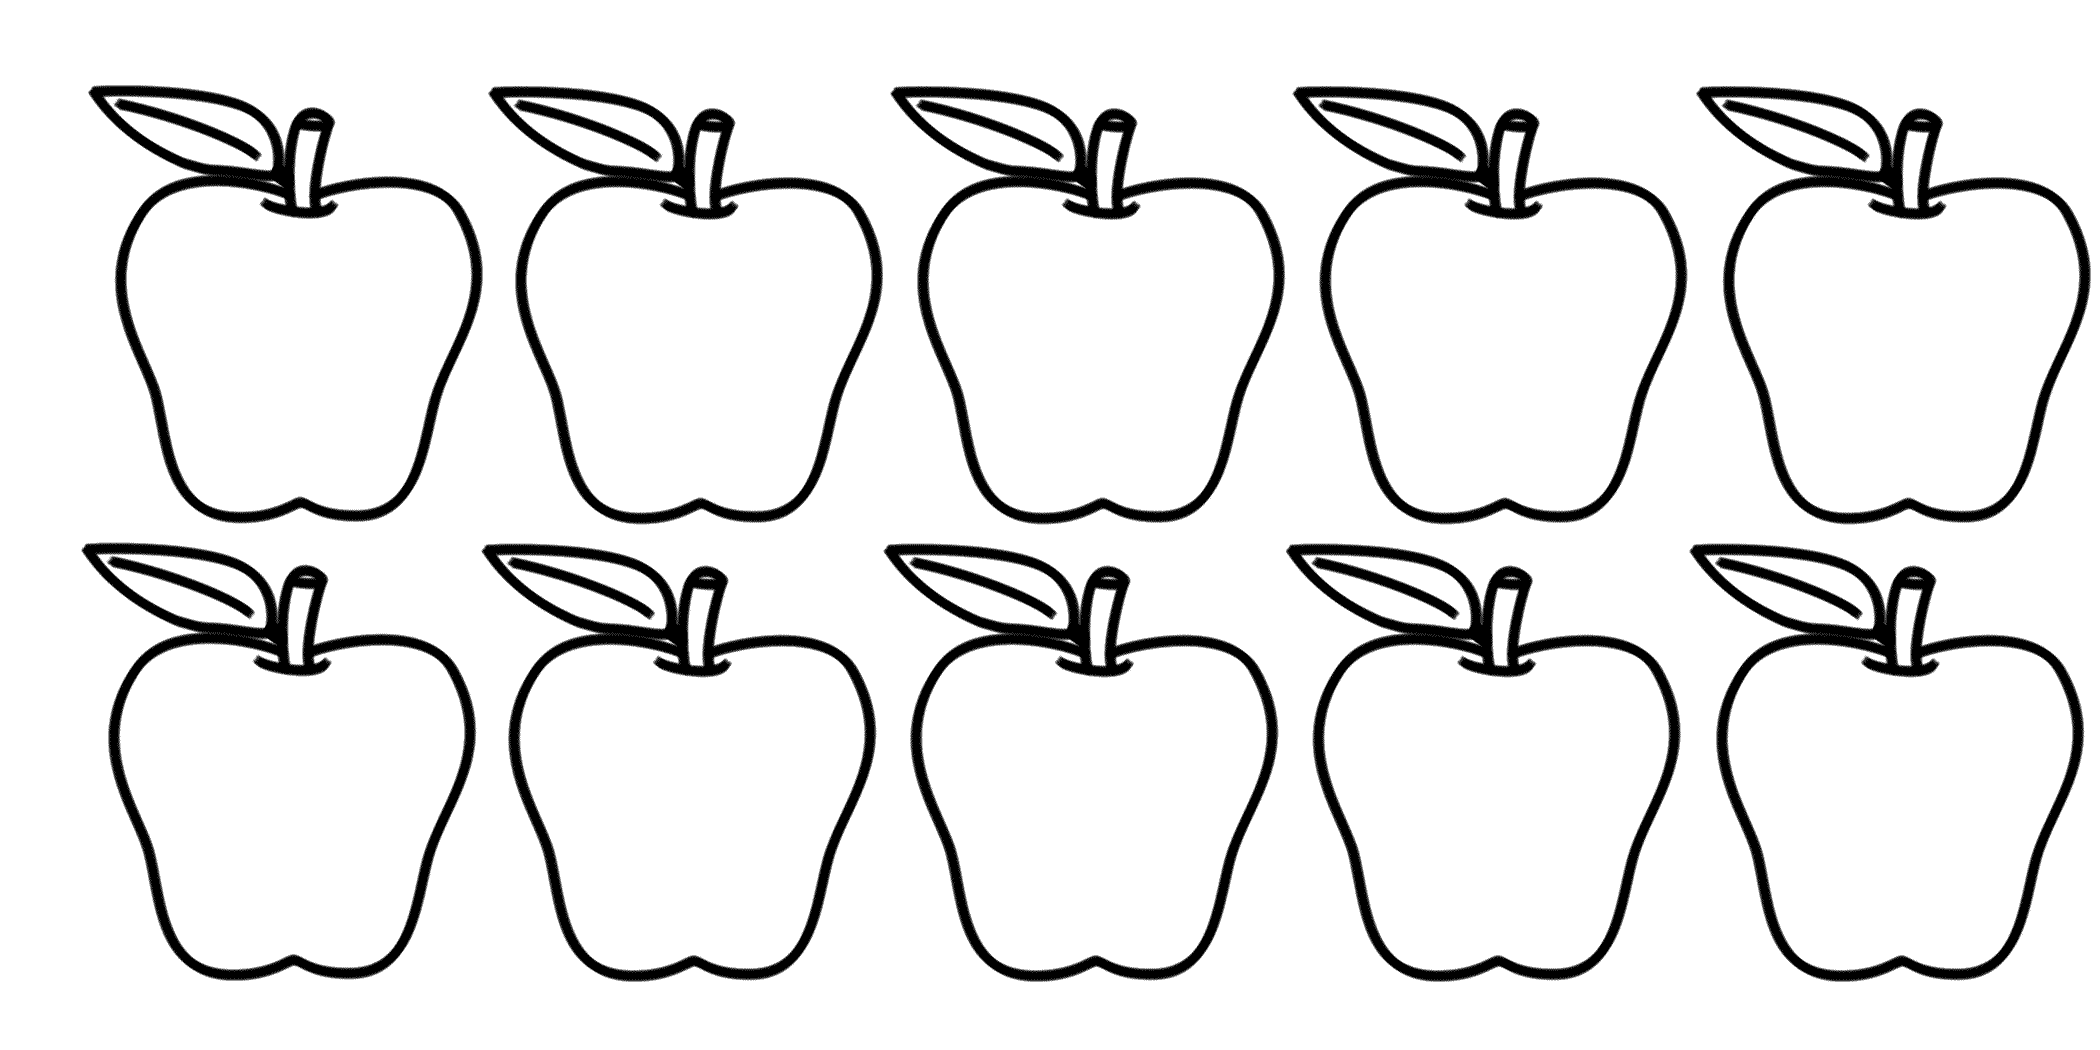 Ten Apples Up On Top Coloring Pages Coloring Pages